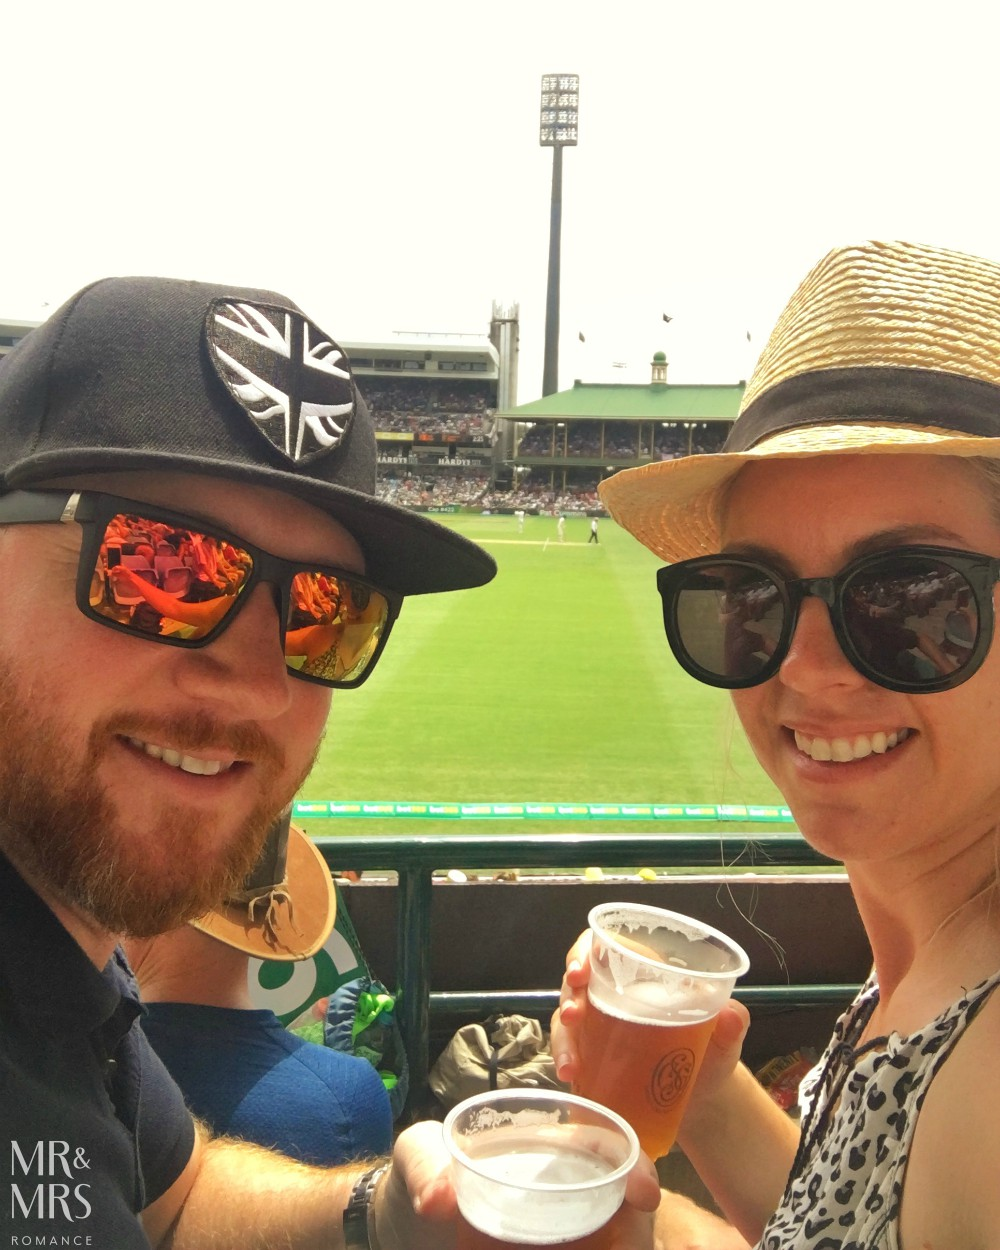 SCG Ashes cricket - Mr and Mrs Romance